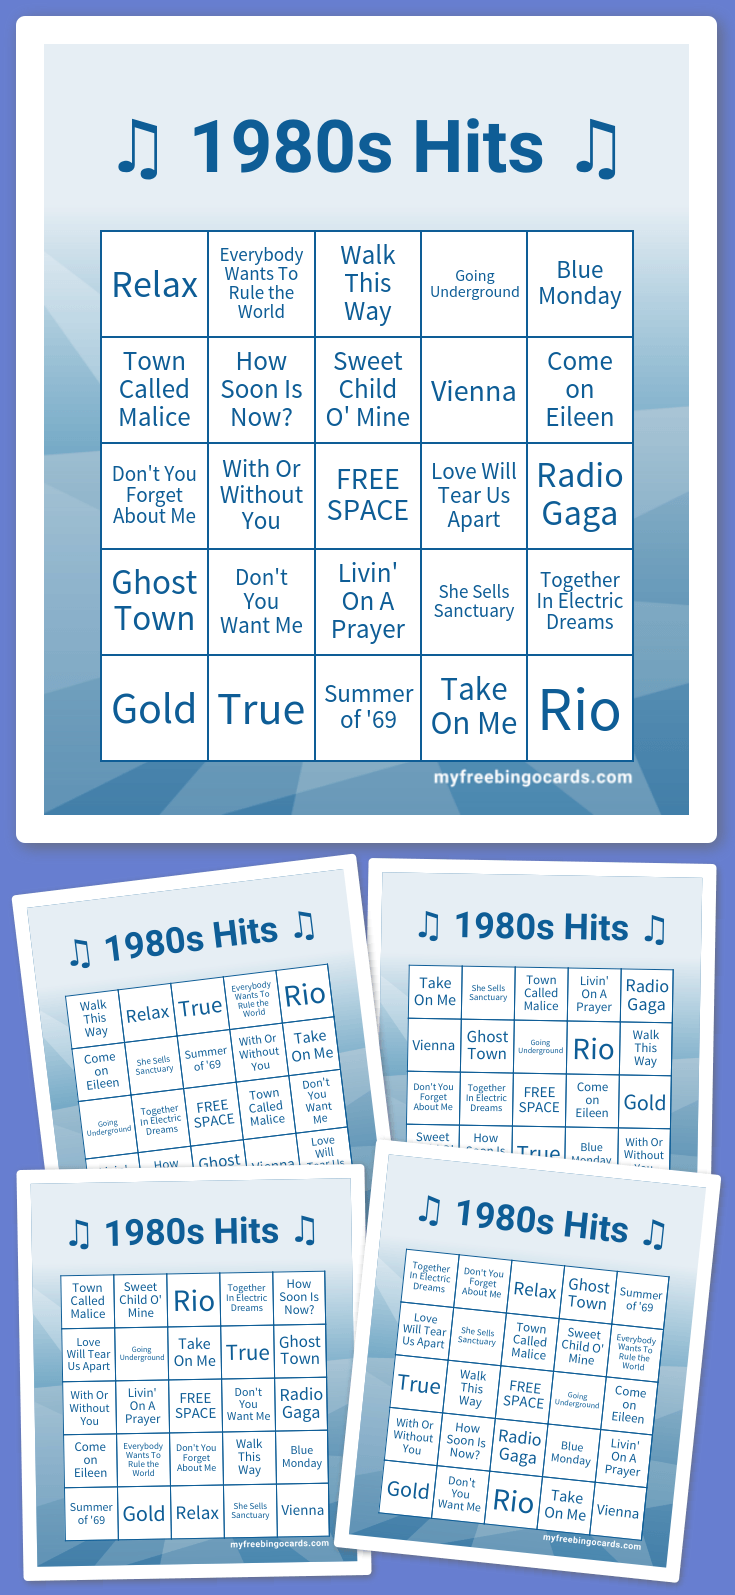 1980s music hits bingo